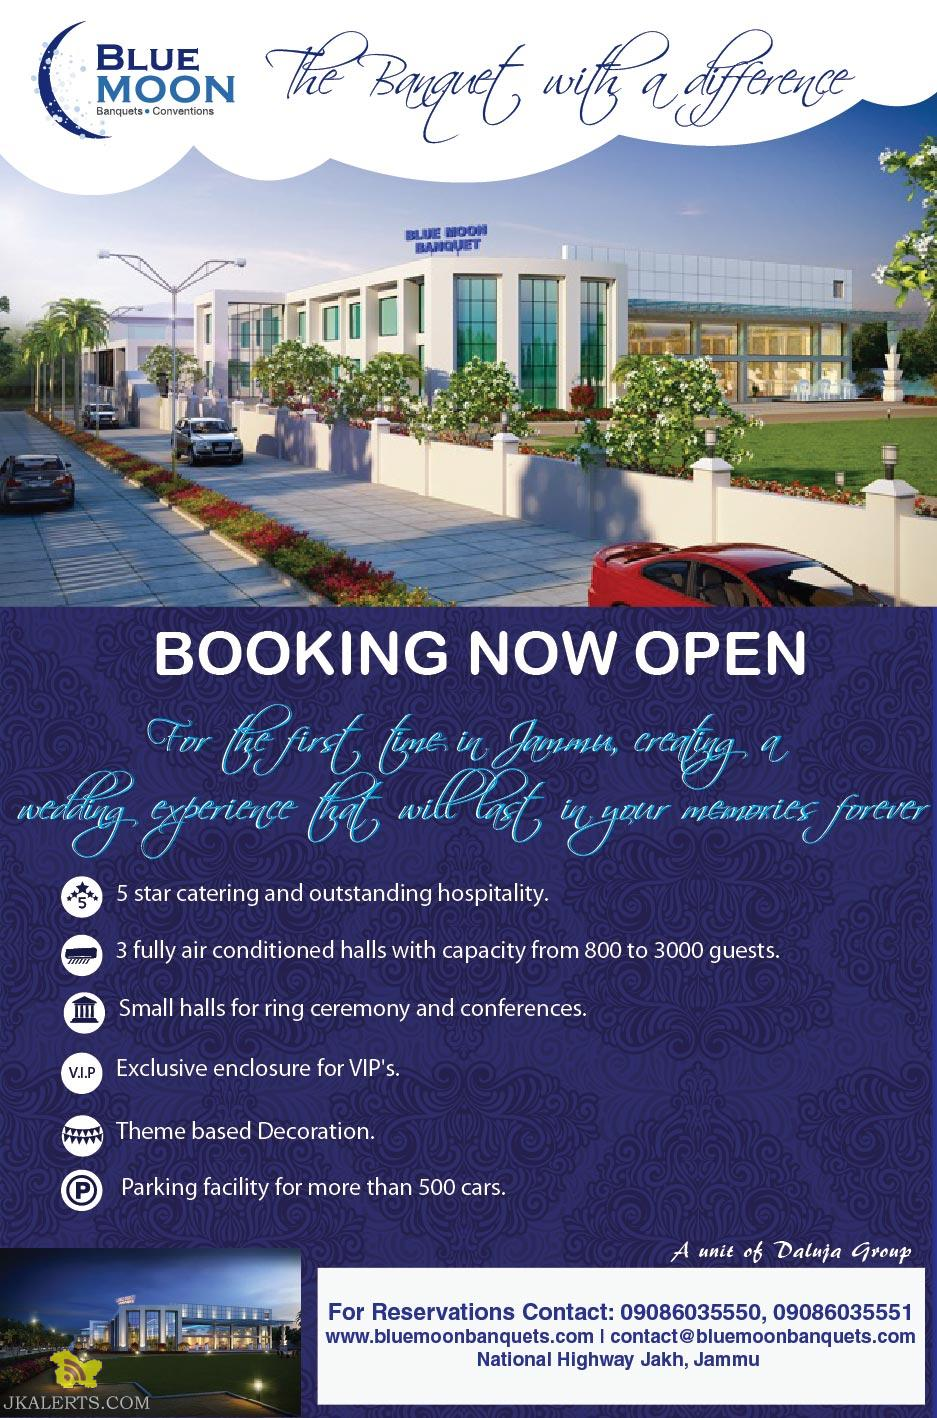 Blue Moon Banquet Jammu Booking open